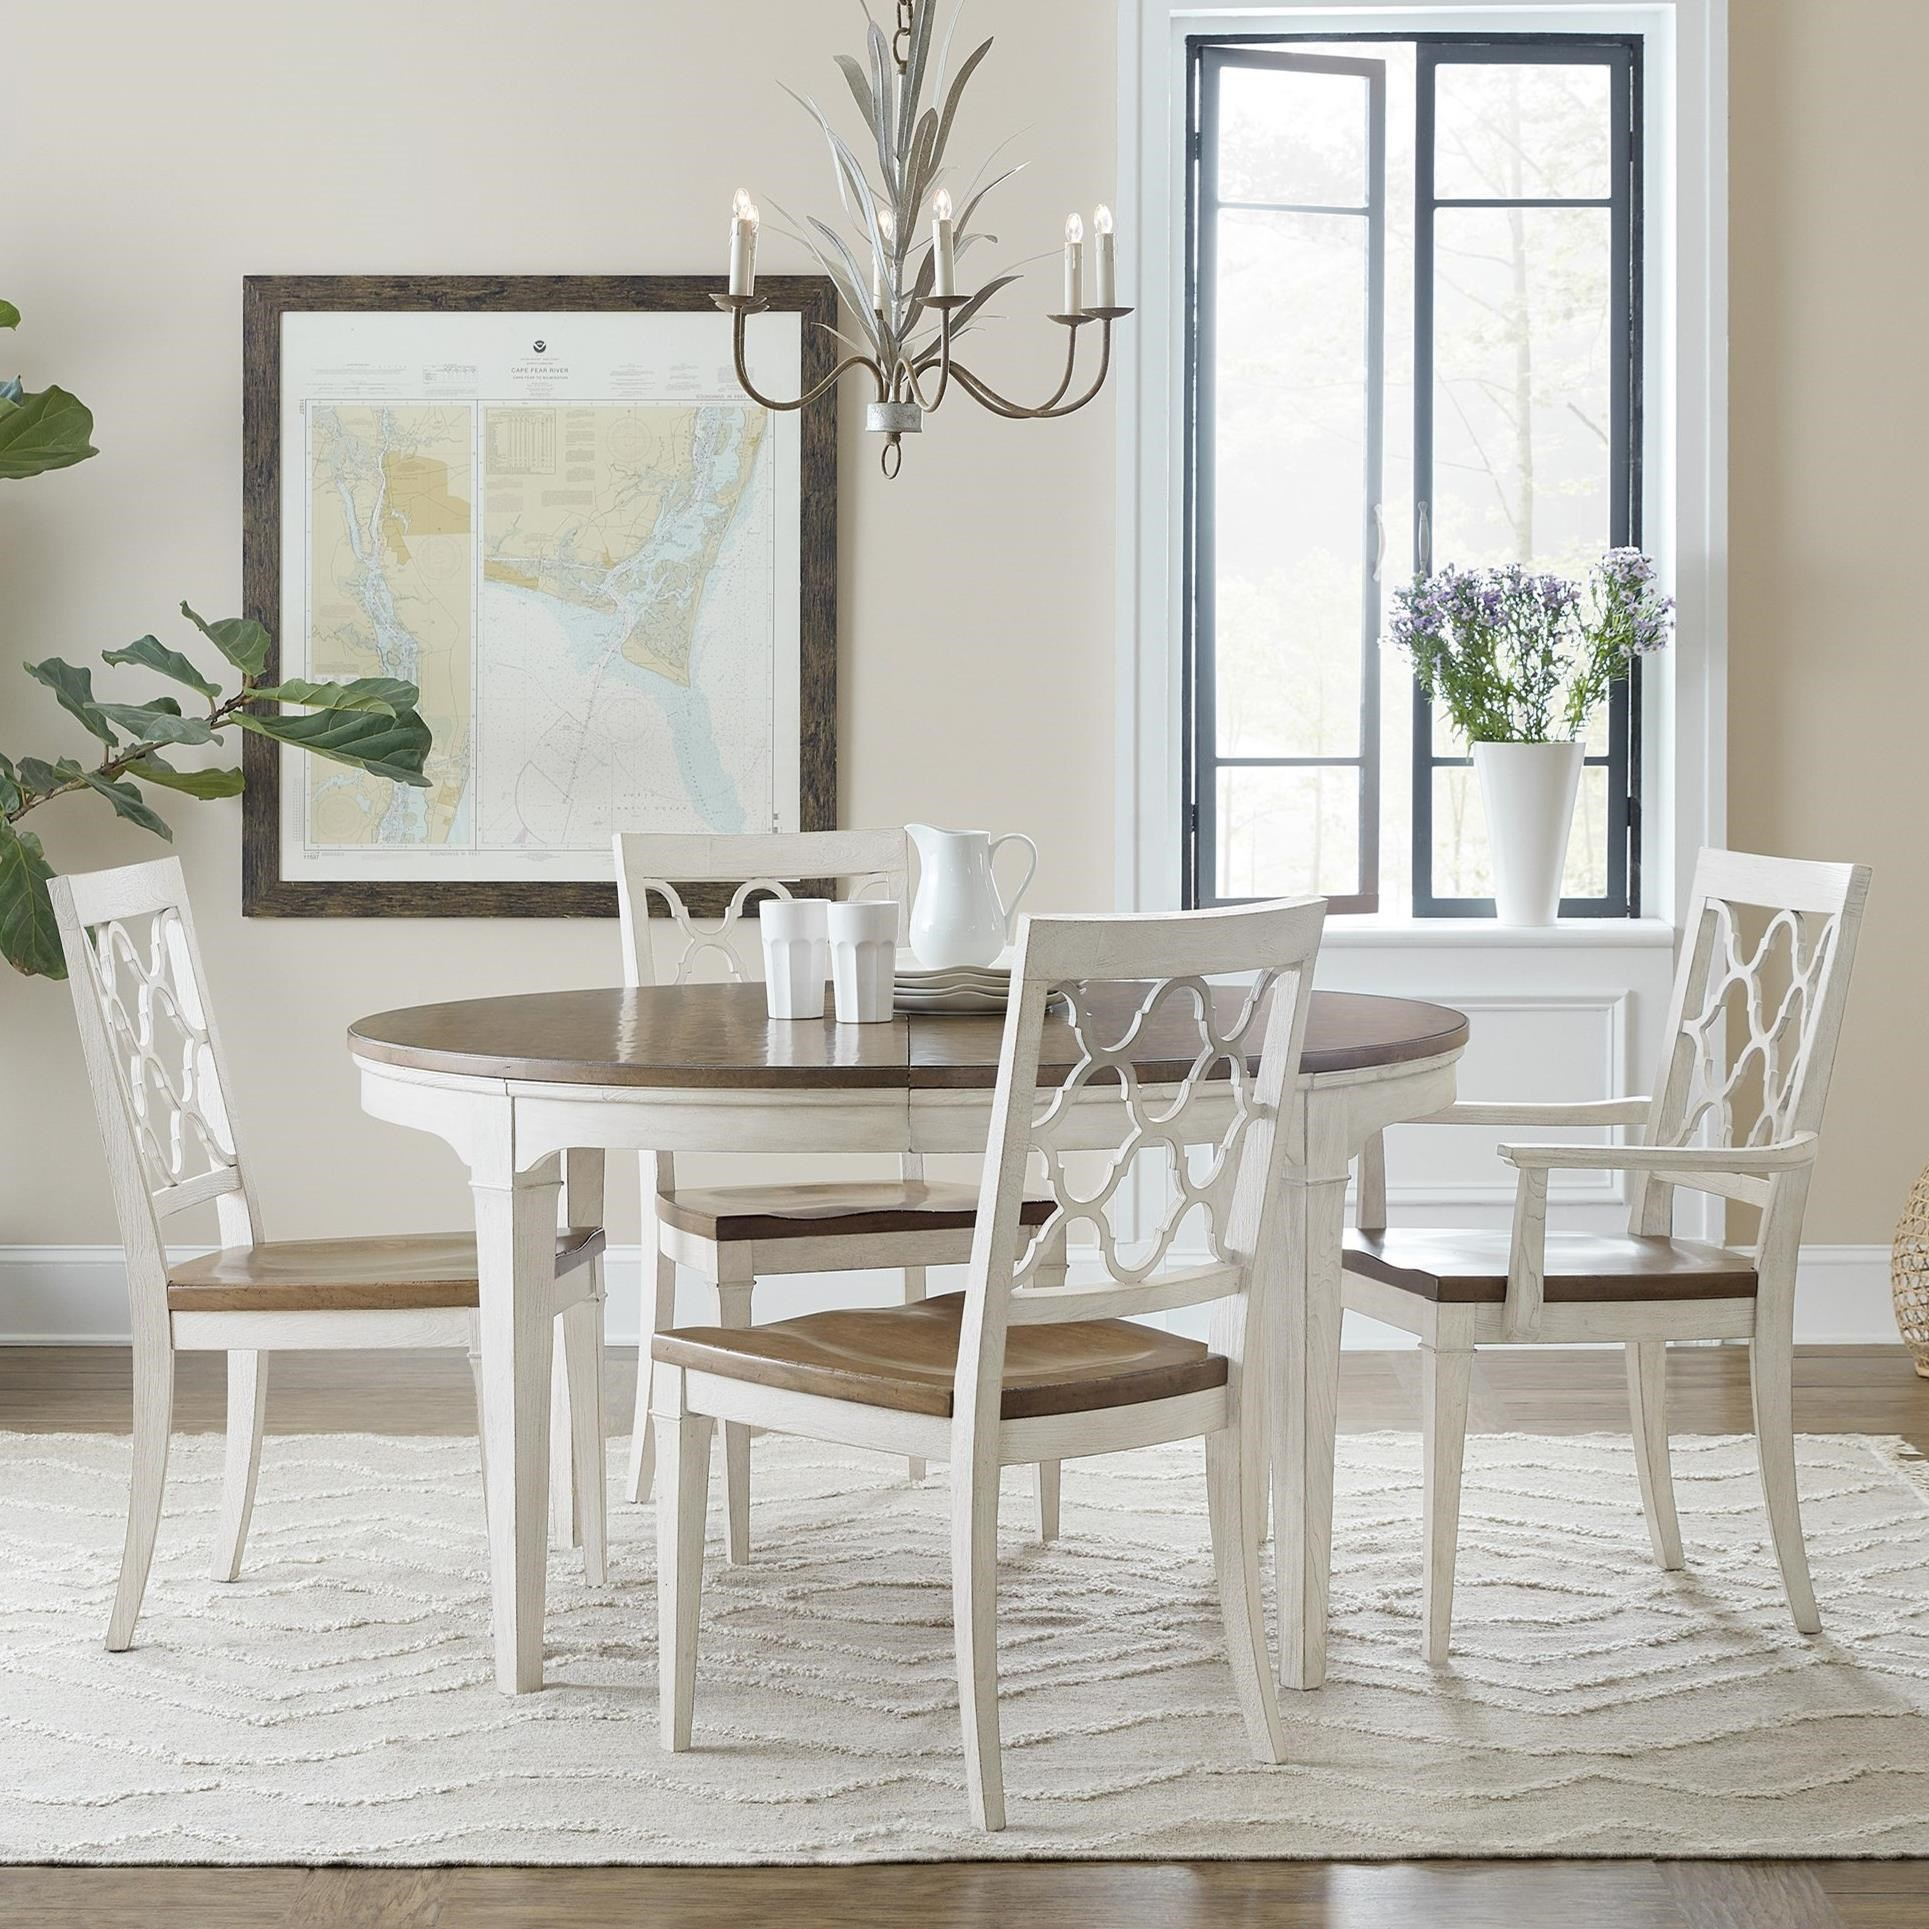 Montebello 5-Piece Dining Set by Hooker Furniture at Stoney Creek Furniture